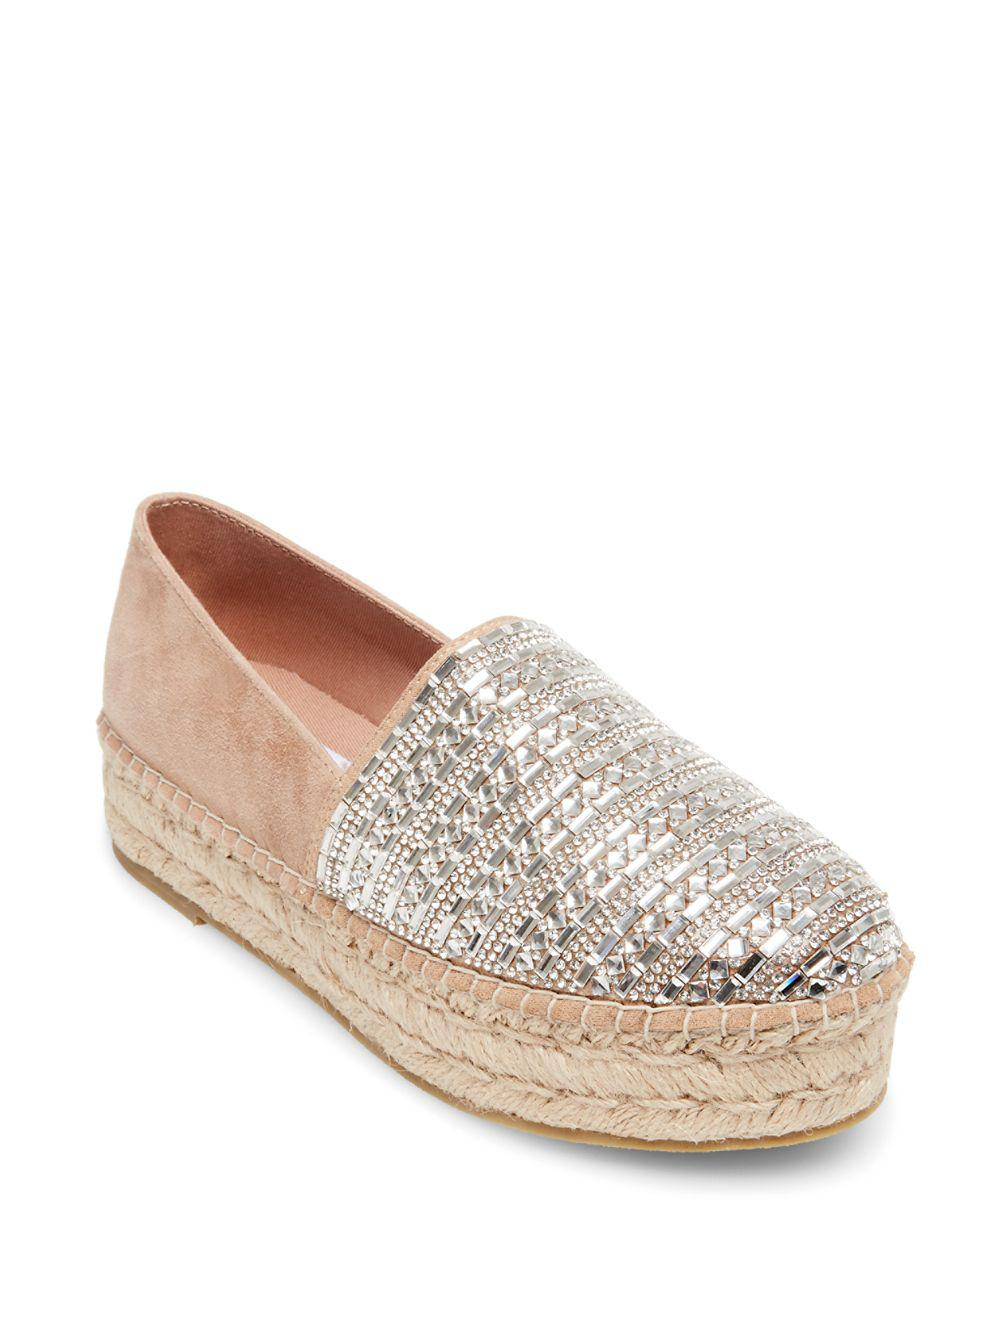 Proud Rhinestone Jeweled Suede Espadrille Slip Ons r0aklRje2